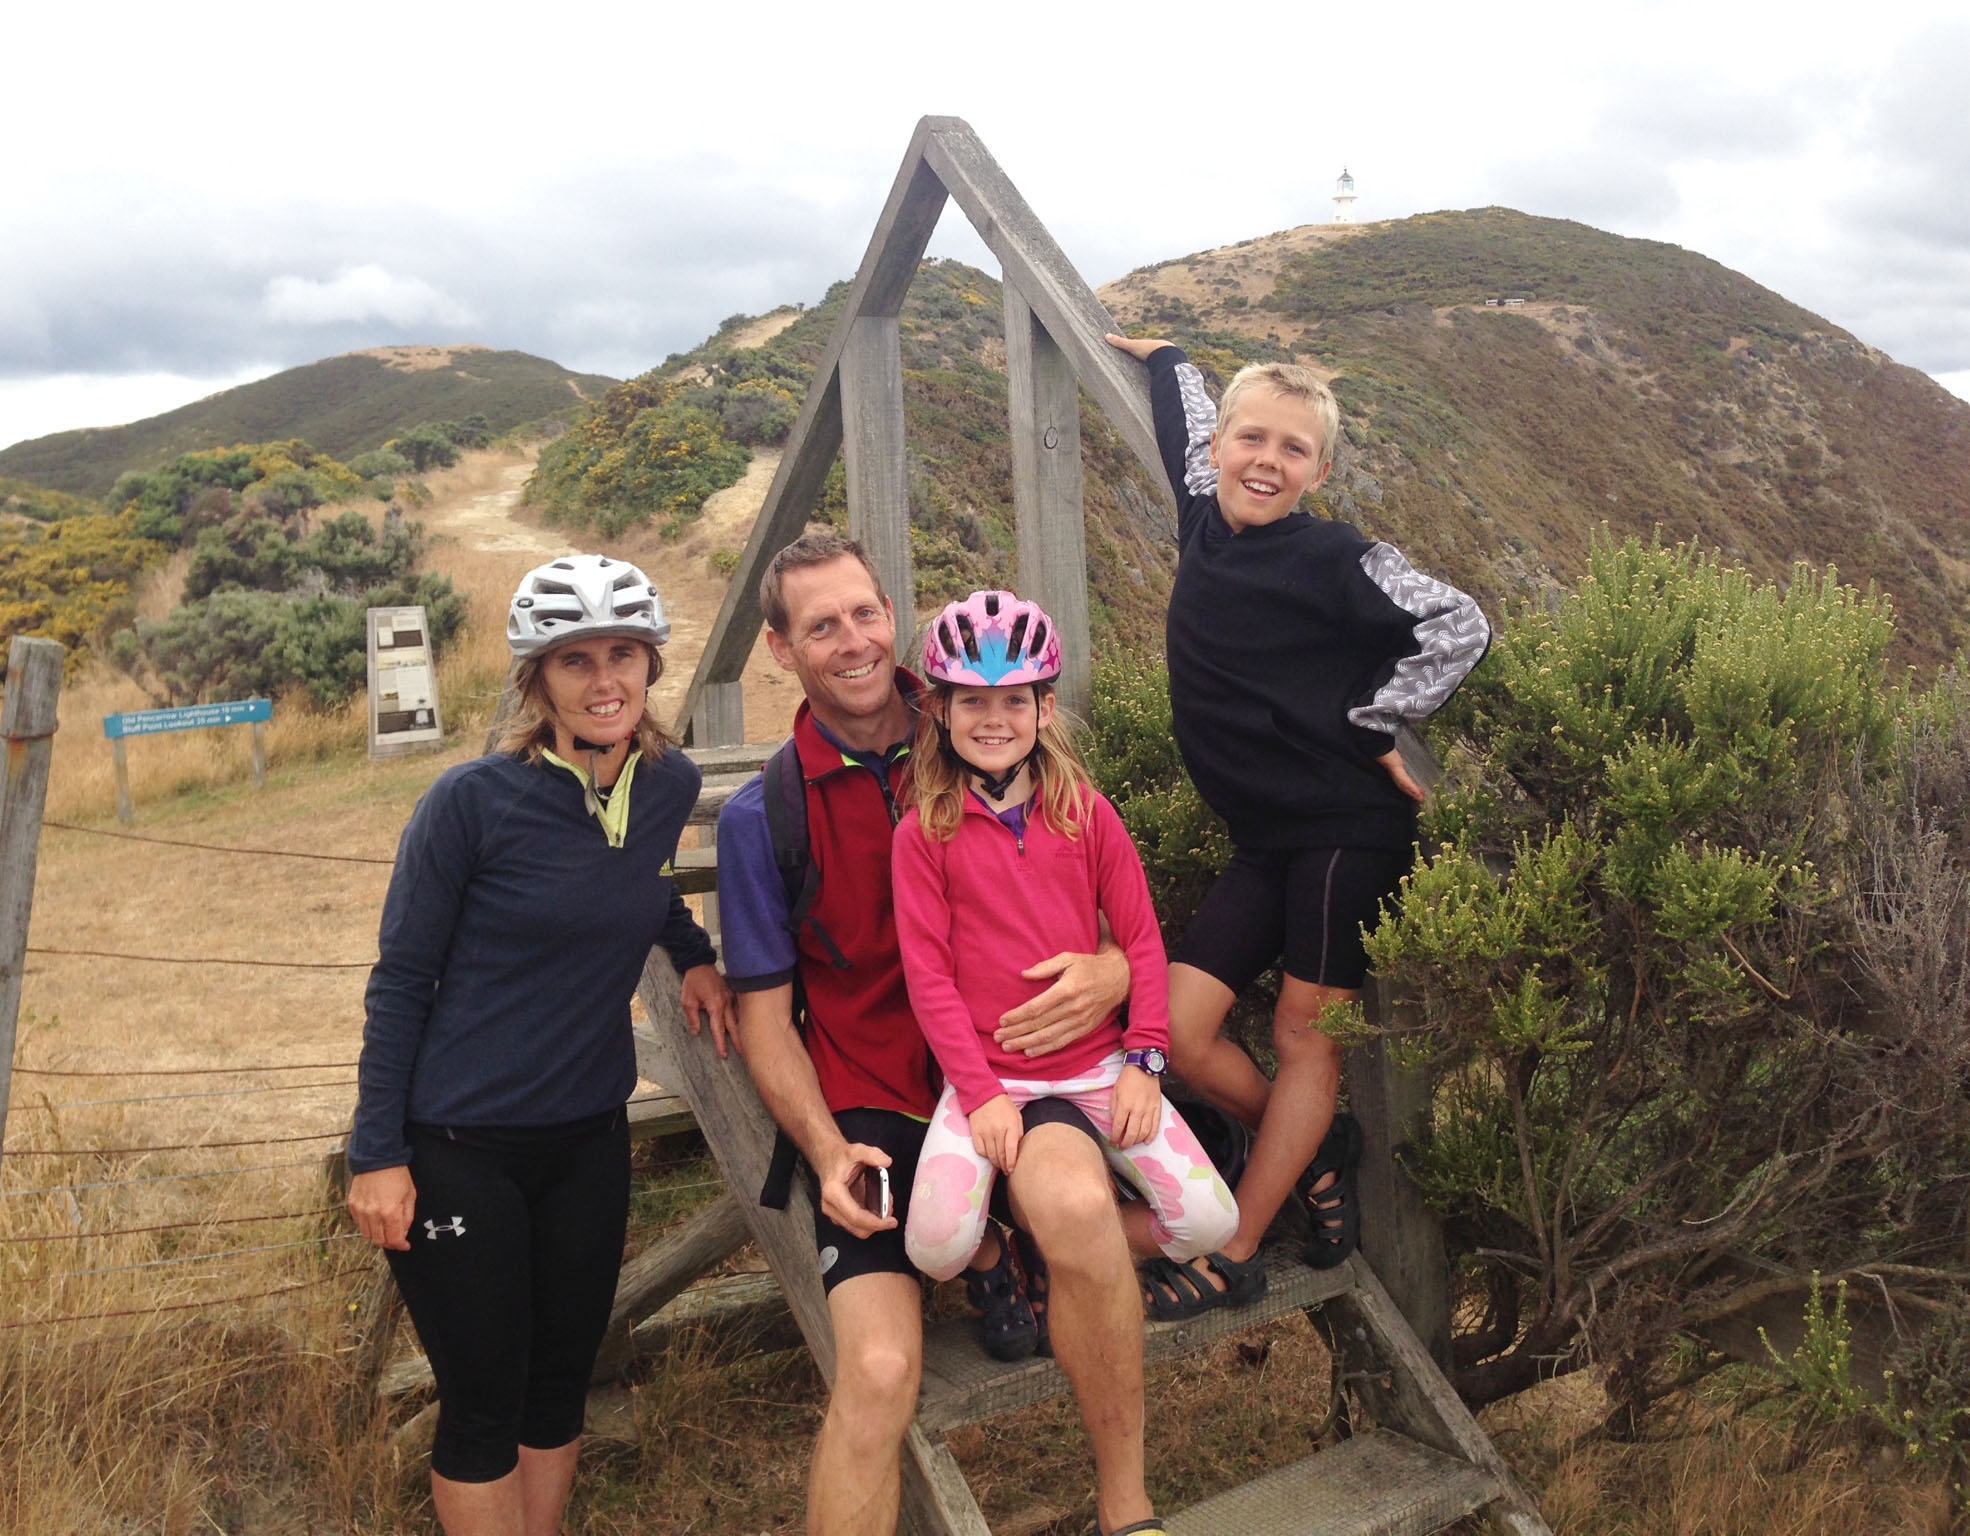 Riding into the wind – Riding with kids